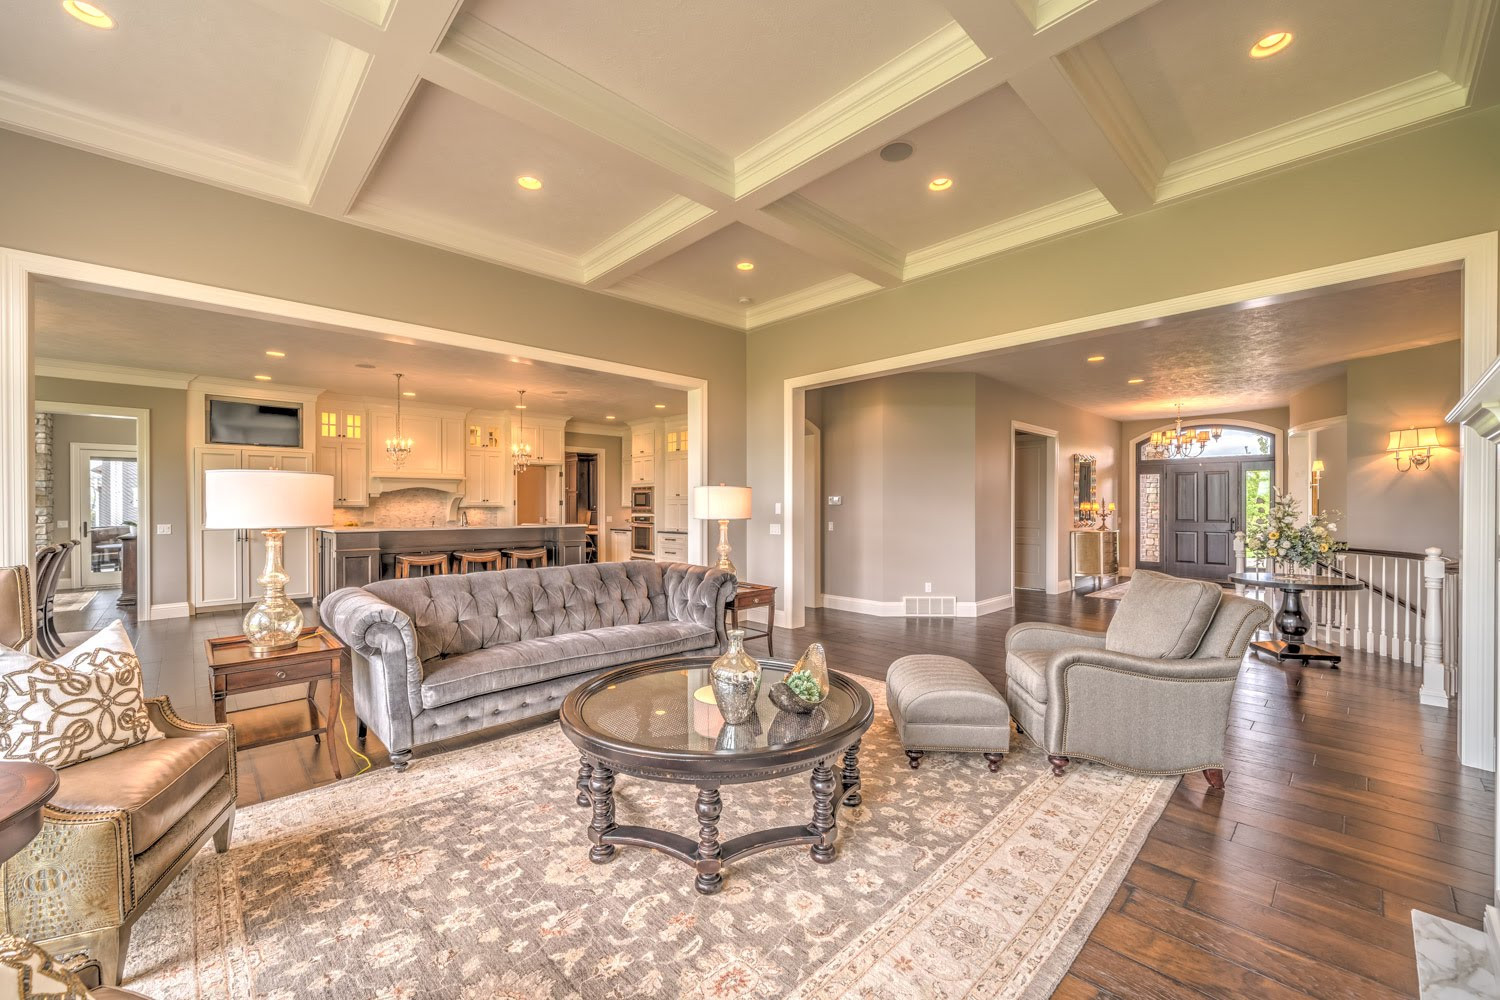 Certified Luxury Builders - Deffenbaugh Homes - Sioux Falls, SD - Custom Home J